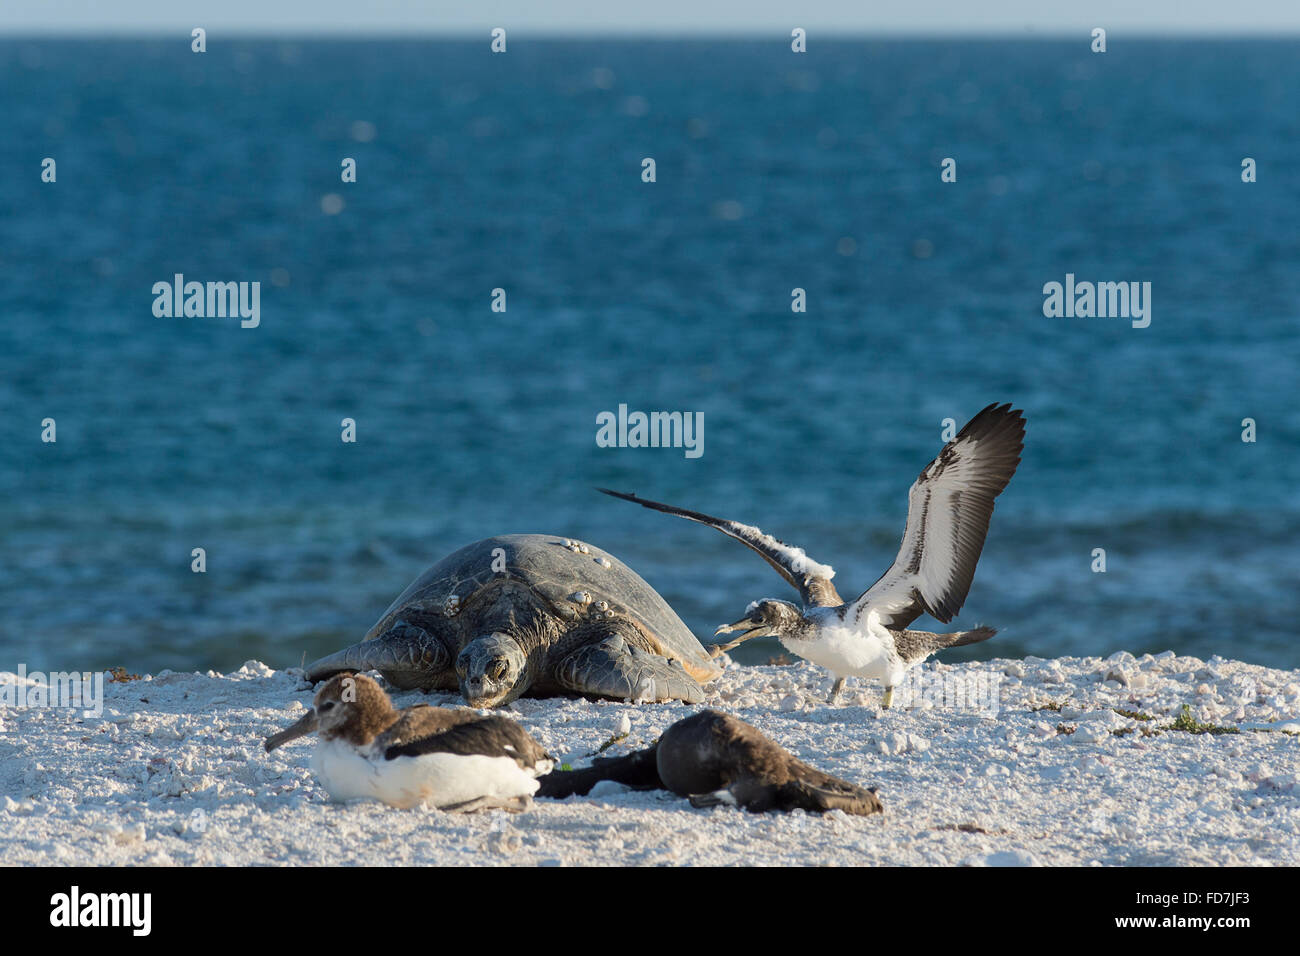 a curious juvenile brown booby, Sula leucogaster, investigates a green sea turtle, Chelonia mydas, French Frigate Stock Photo